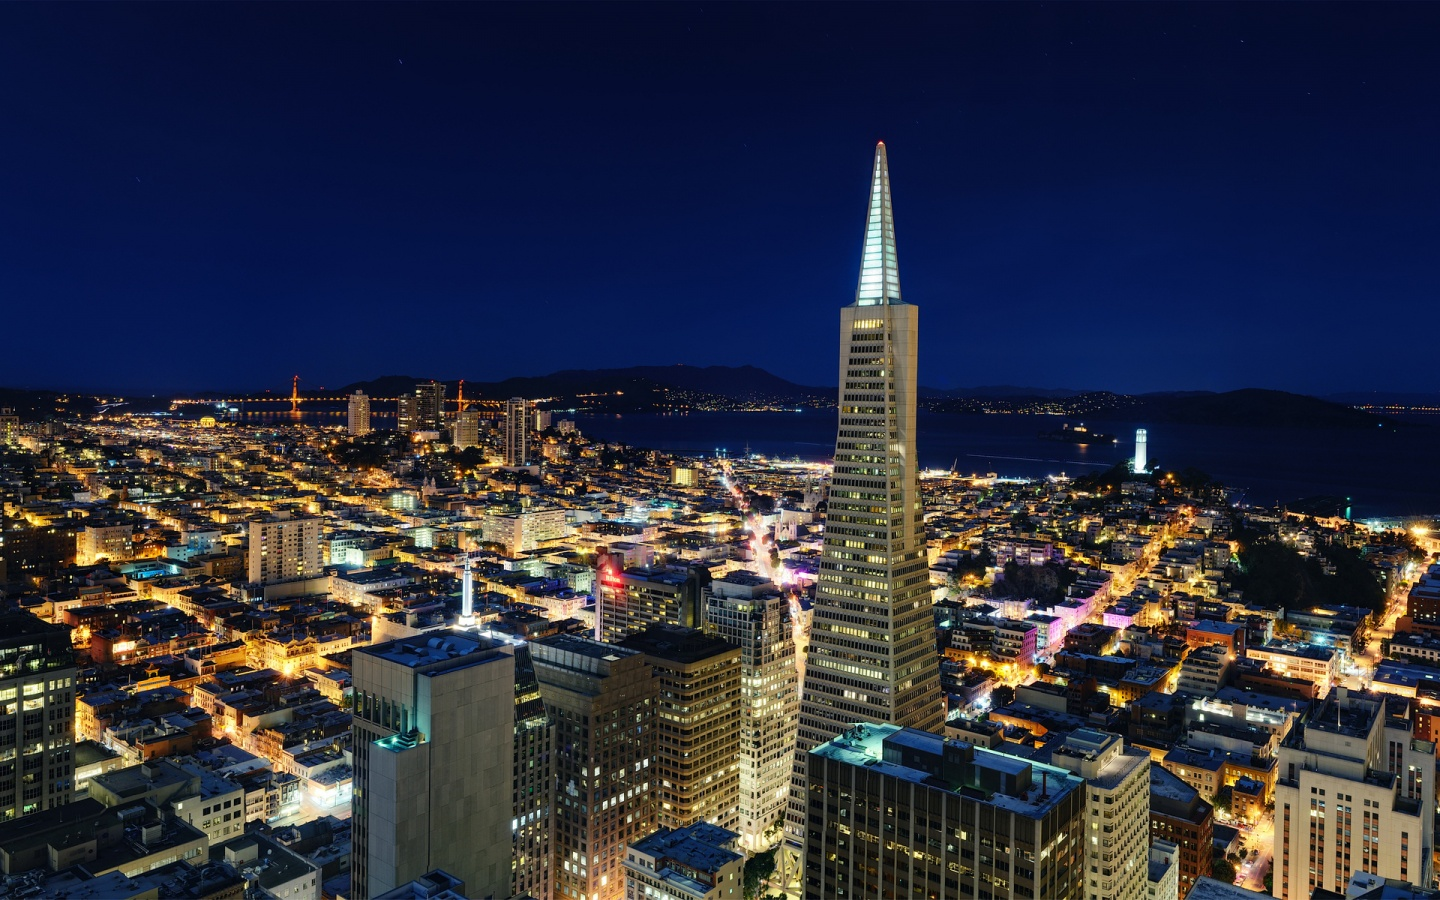 San Francisco Nightlife